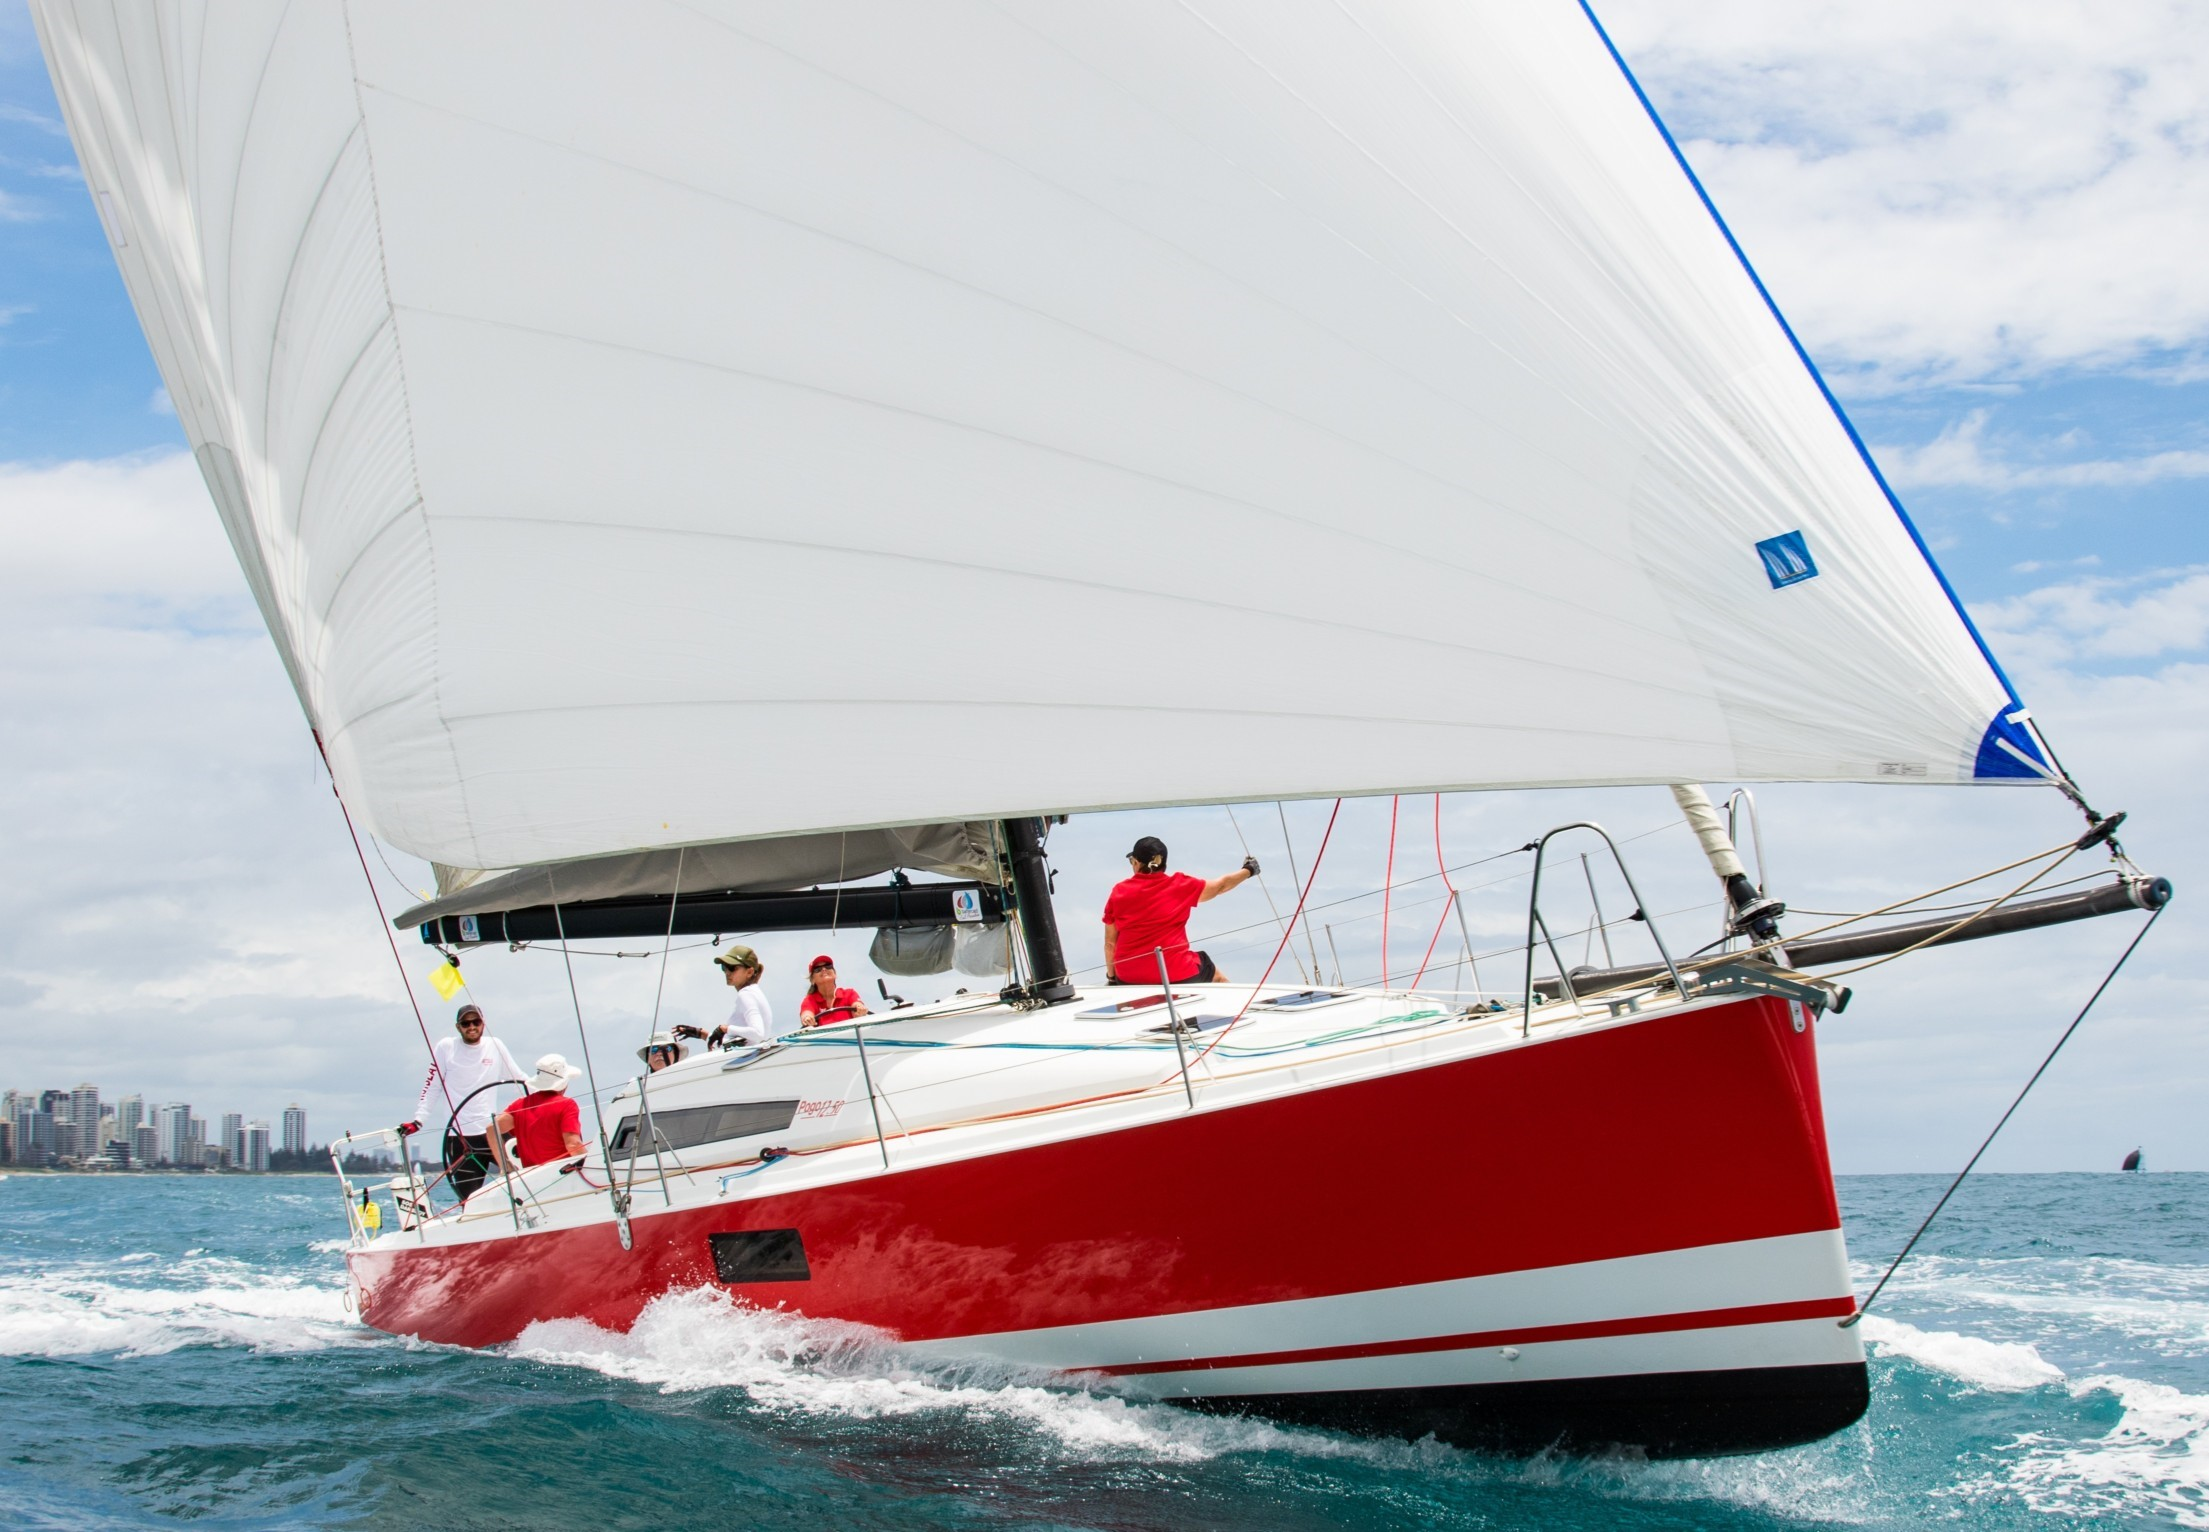 Red yacht on a spinnaker reach, relatively flat waters, creating a little wash.